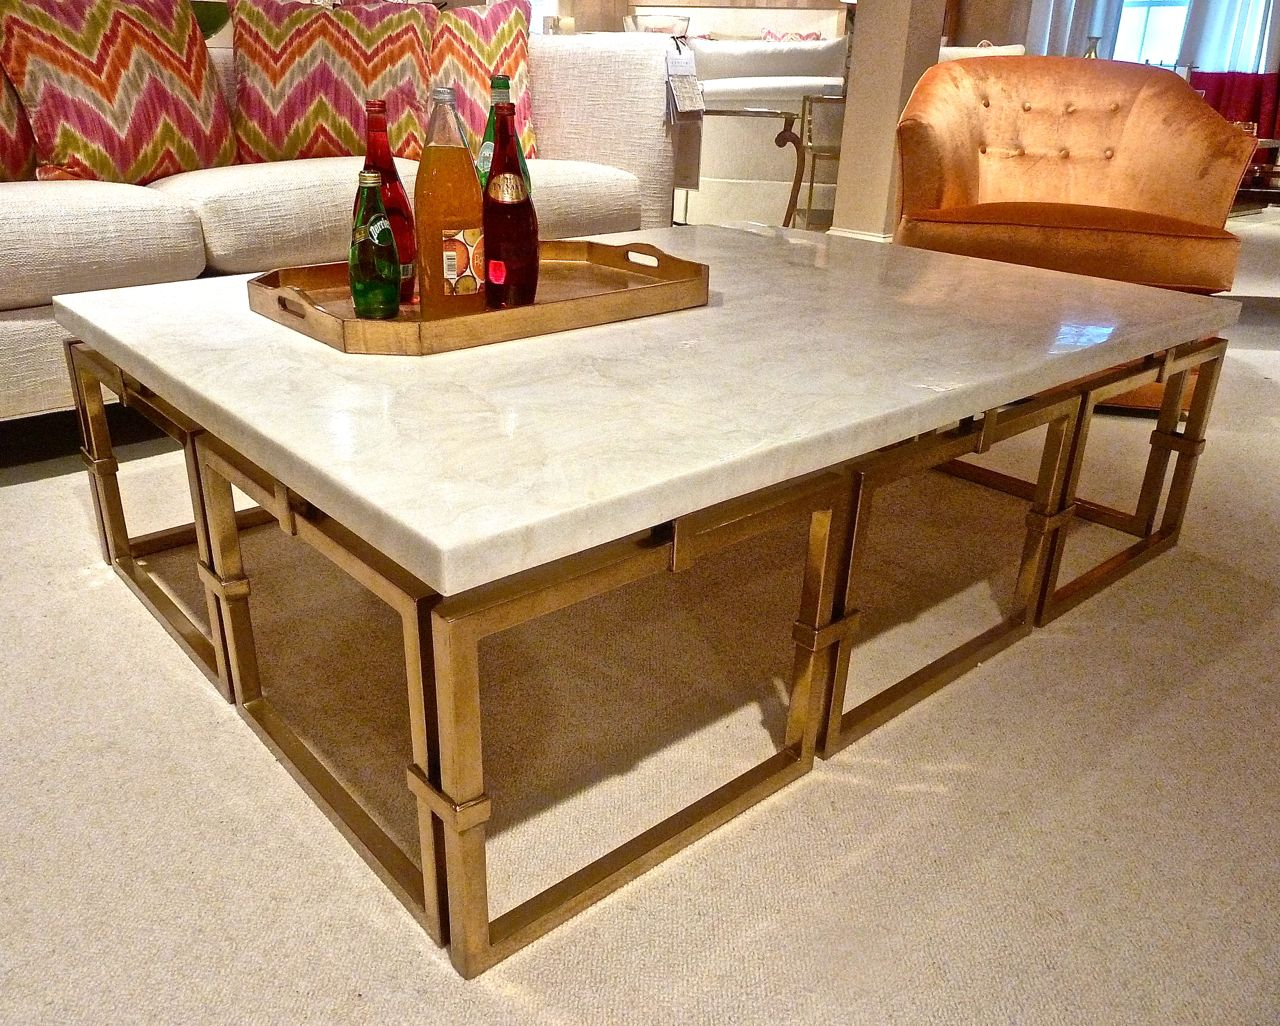 Pin By Quintessence On Stacey Bewkes Marble Coffee Table Living Room Marble Tables Design Coffee Table [ 1026 x 1280 Pixel ]